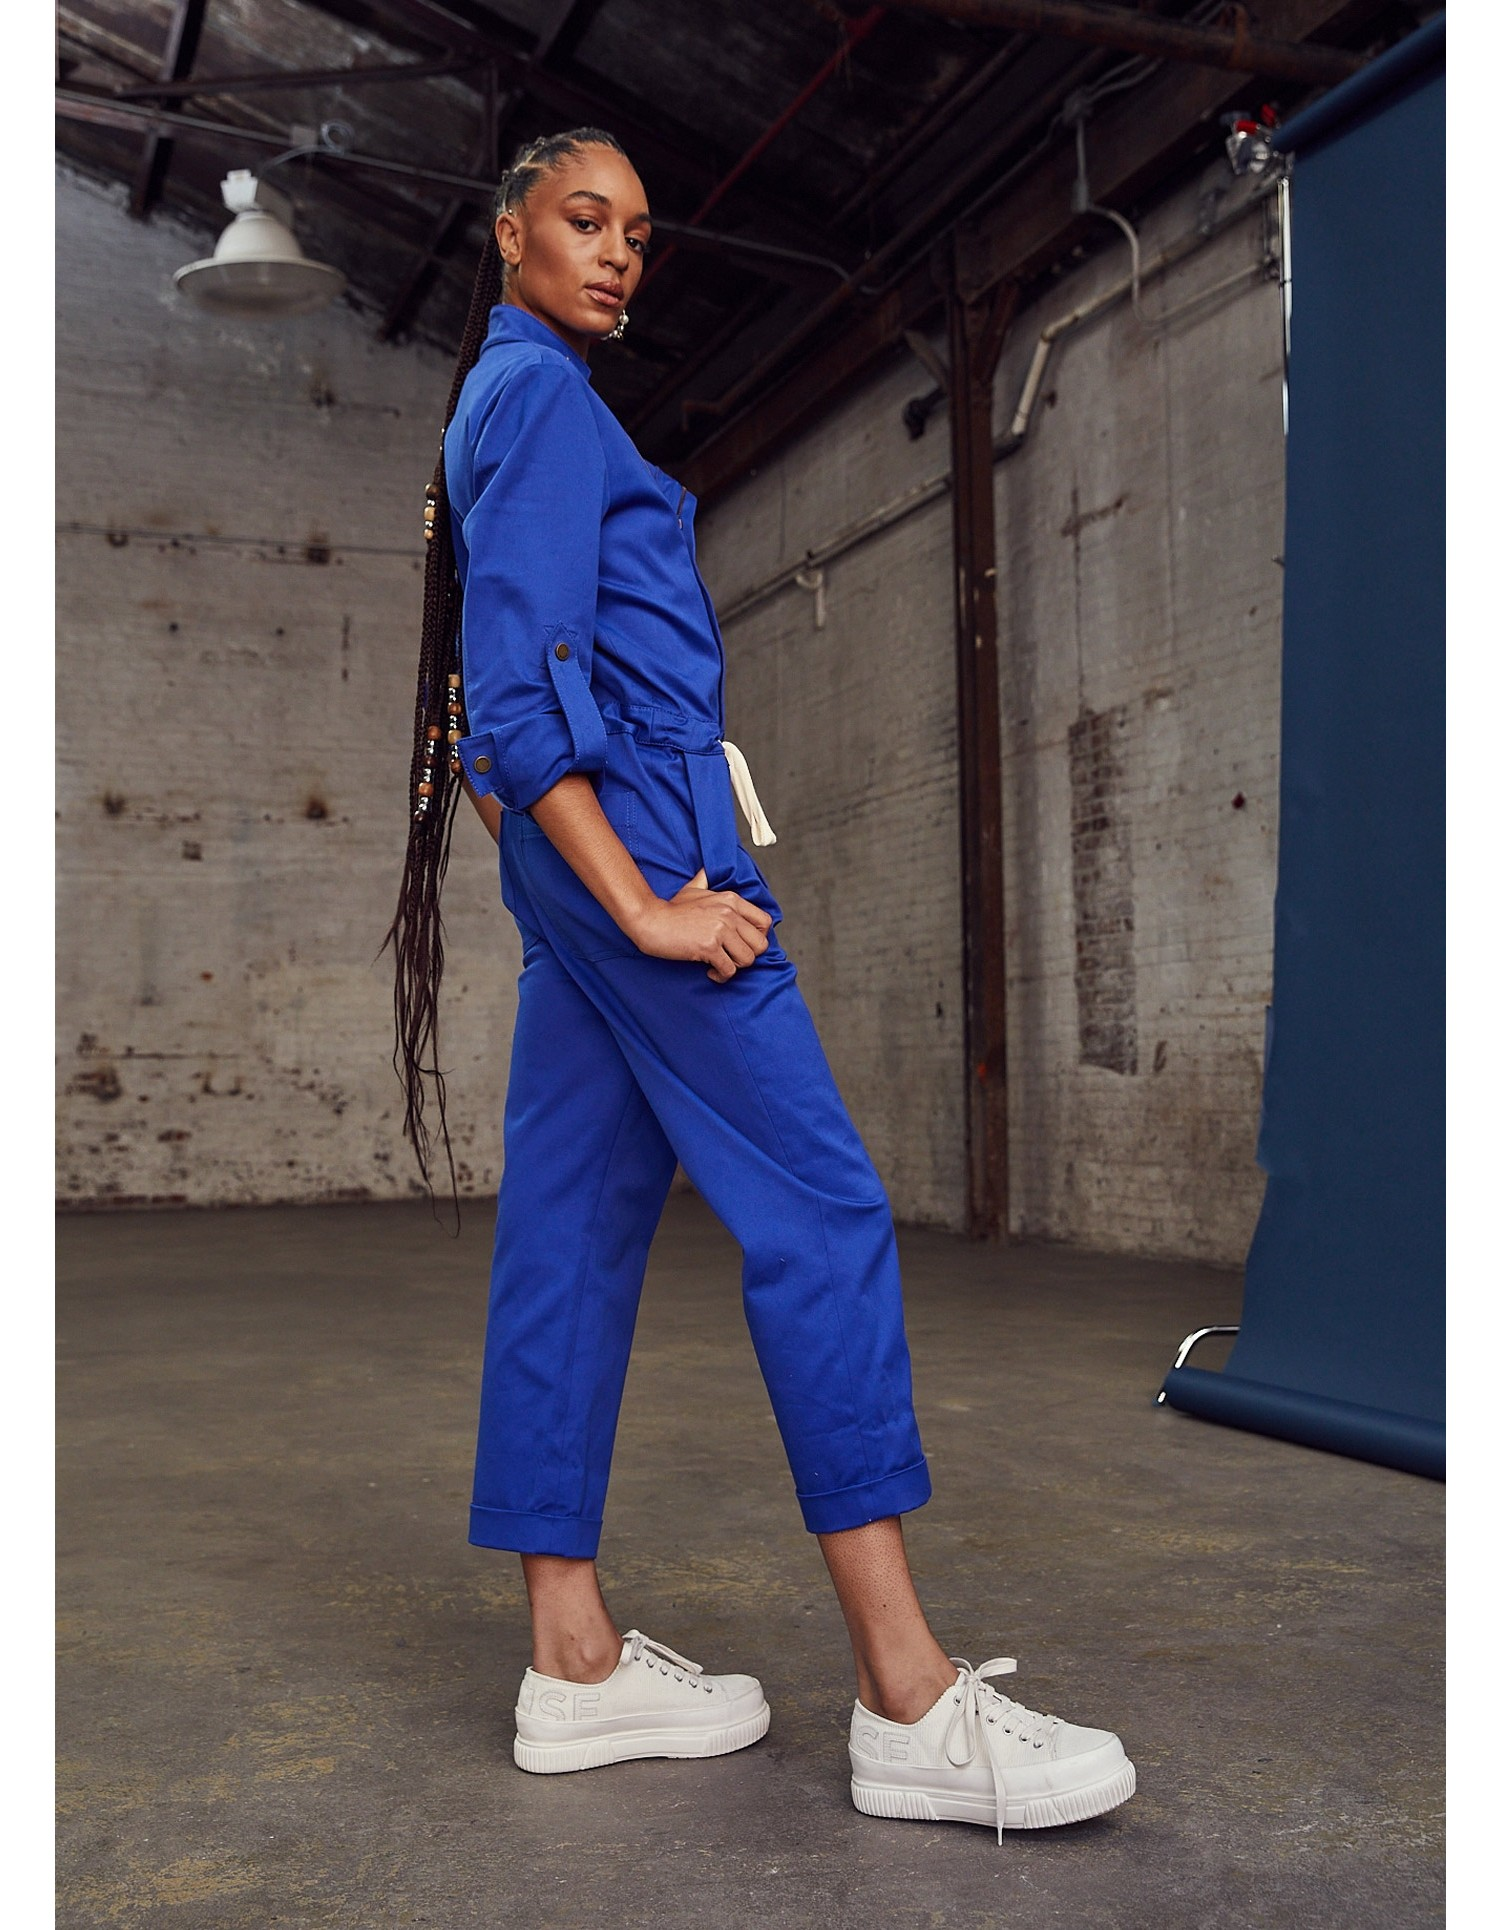 MONSE Racer Jumpsuit in Electric Blue on Model Side View